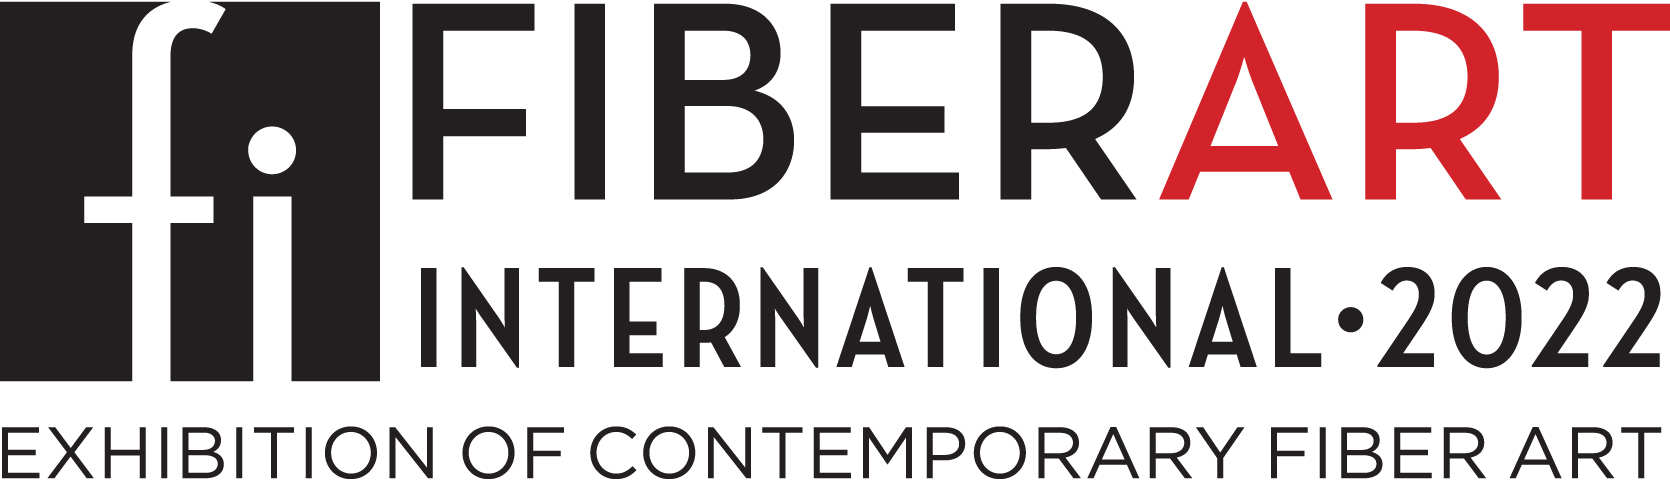 Fiberart International